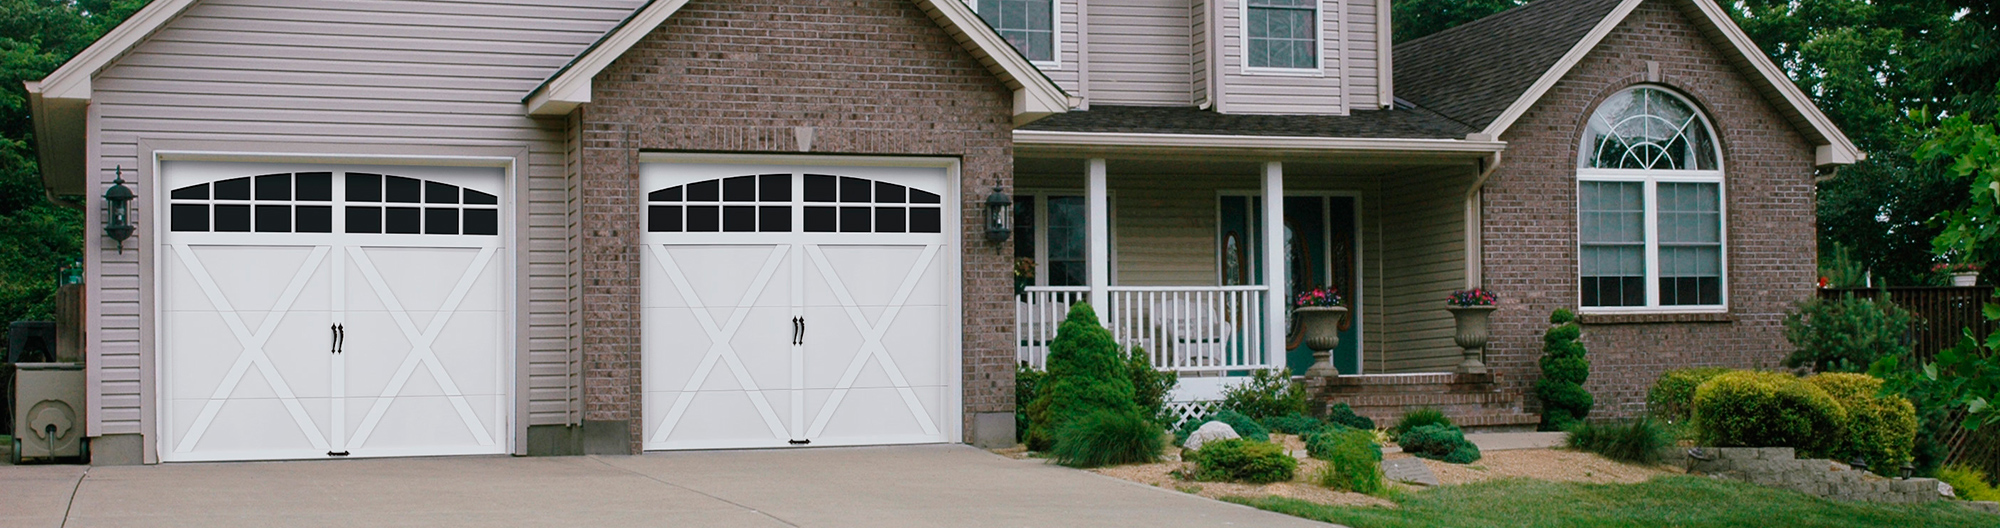 Garage Door Parts Near My Location Request Garage Door Repairs Maintenance In Charlotte Nc Rcs